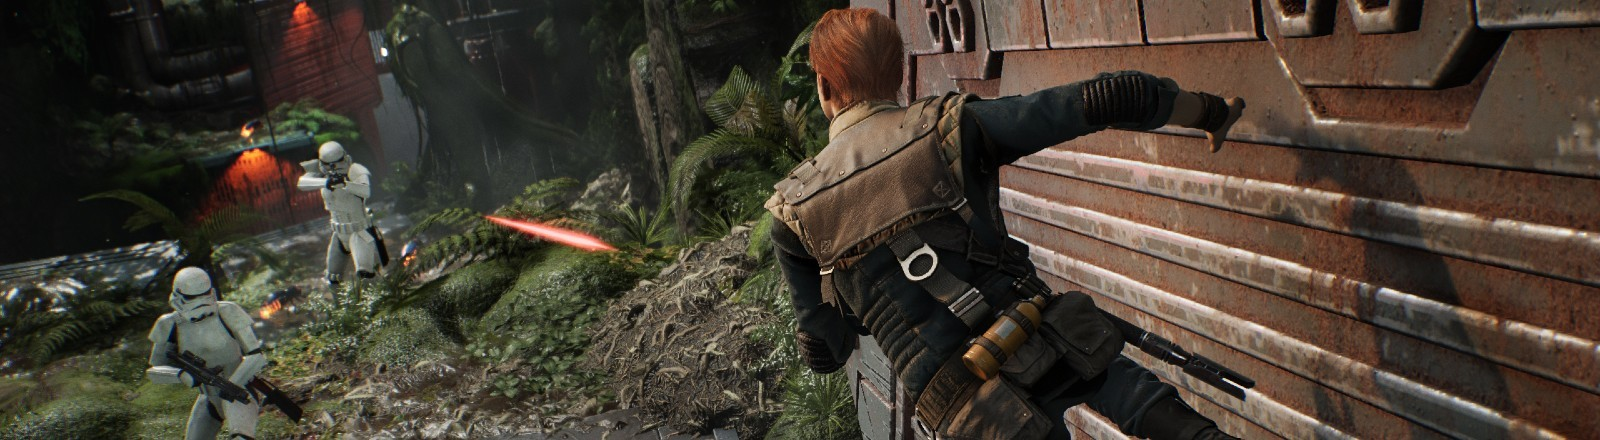 "Ein Screenshot aus dem Game: ""Jedi: Fallen Order"""